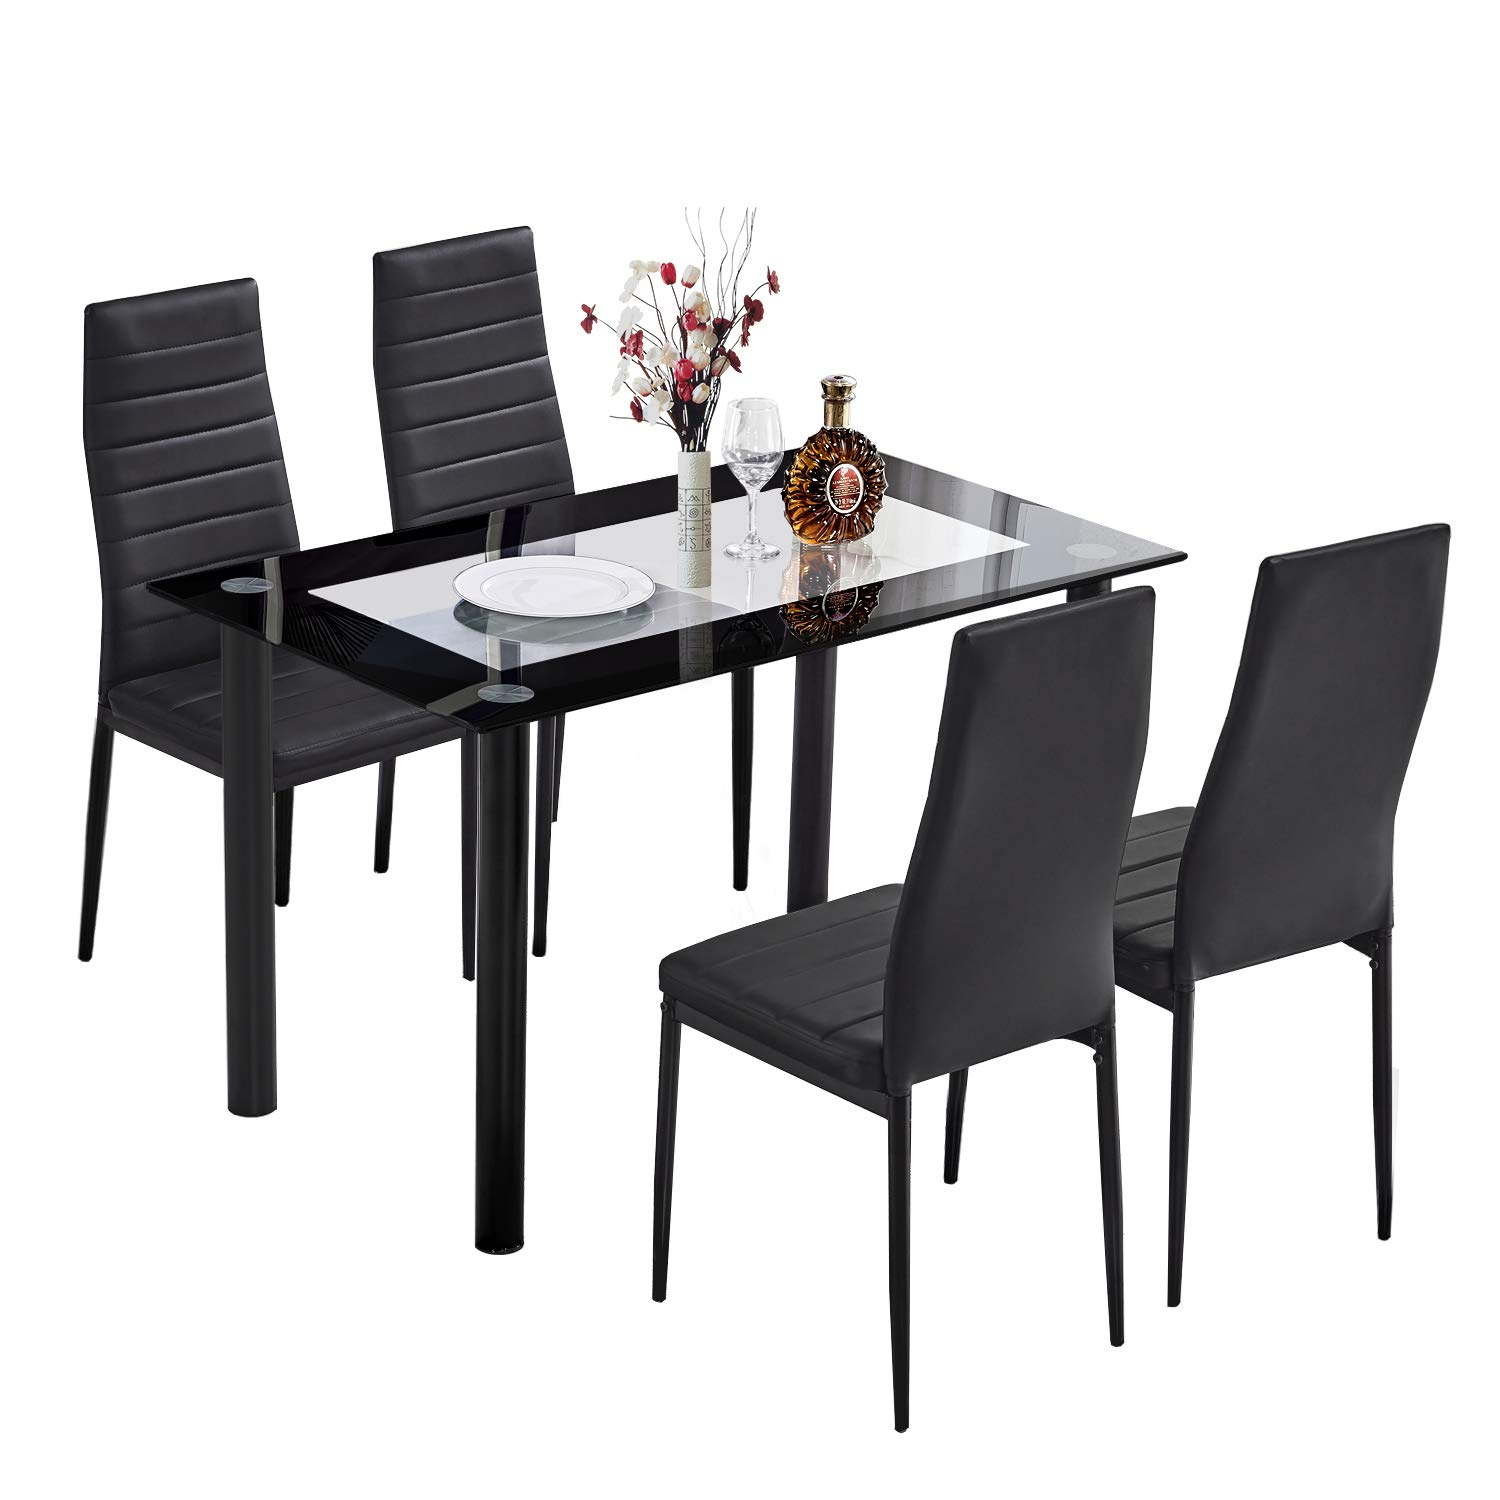 Trustiwood 5 Piece Kitchen Dining Table Set Modern Glass Dinette Set Dining Set w/ 4 PU Faux Leather Chairs Dining Room Sets Home Furniture, Black